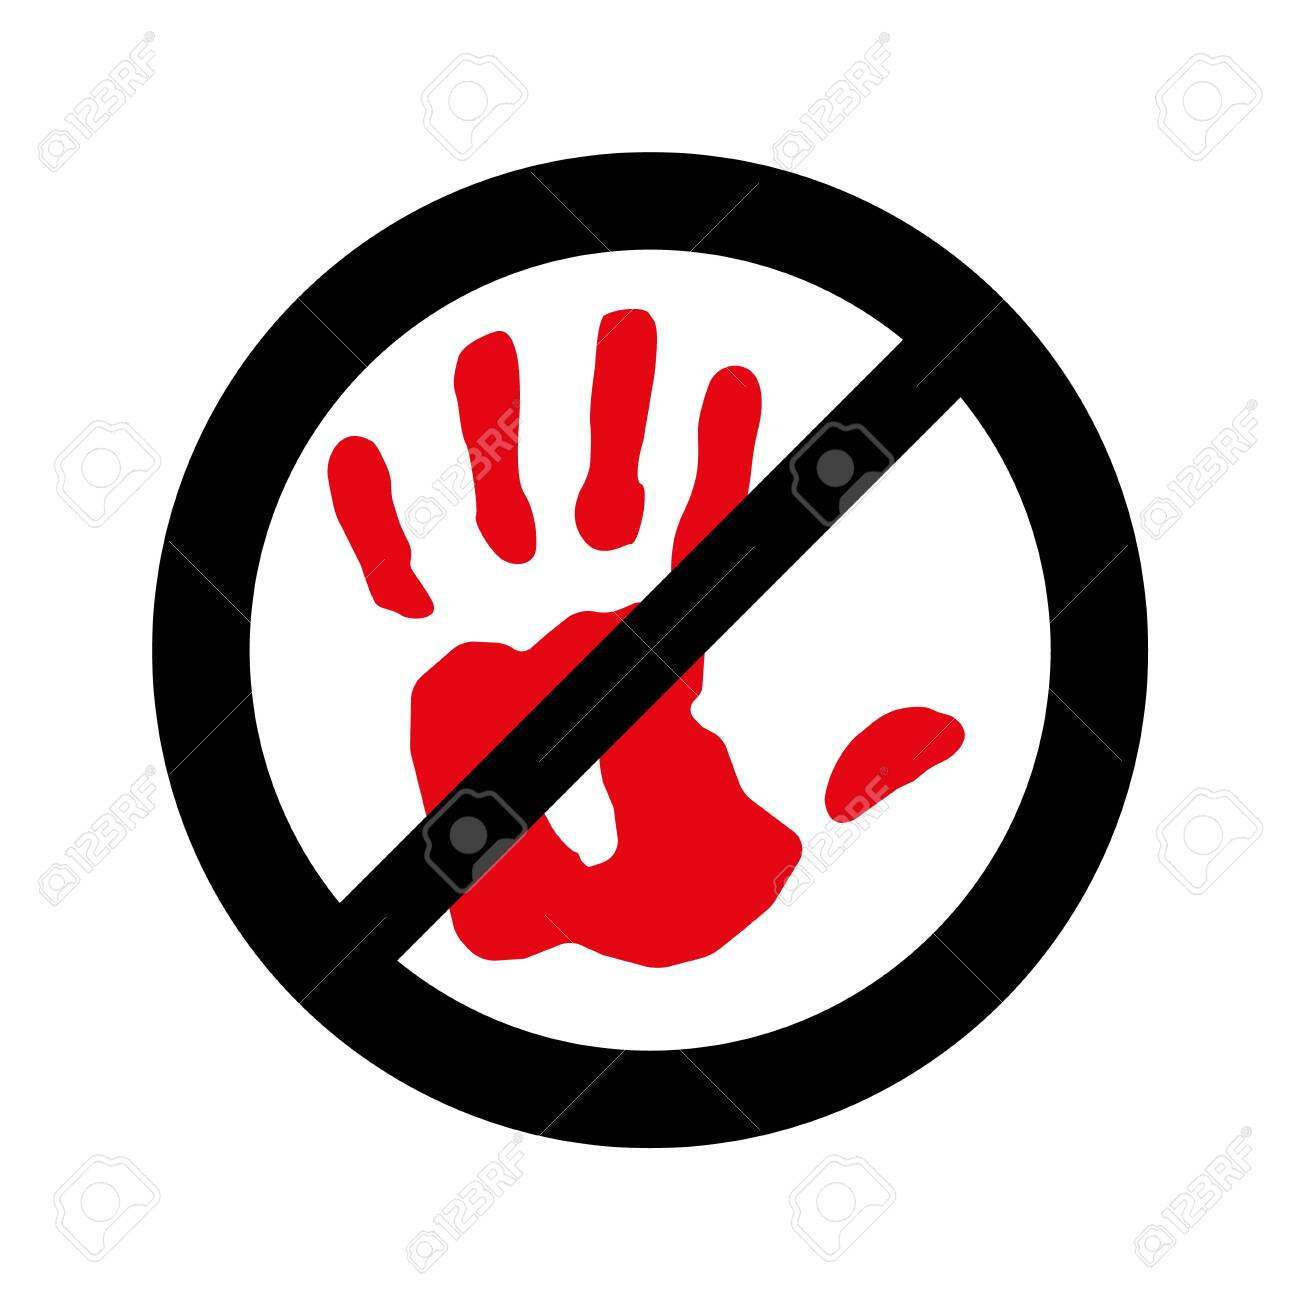 No entry, not allowed hand sign on white, Stop hand, Sign do not enter. - 134200211